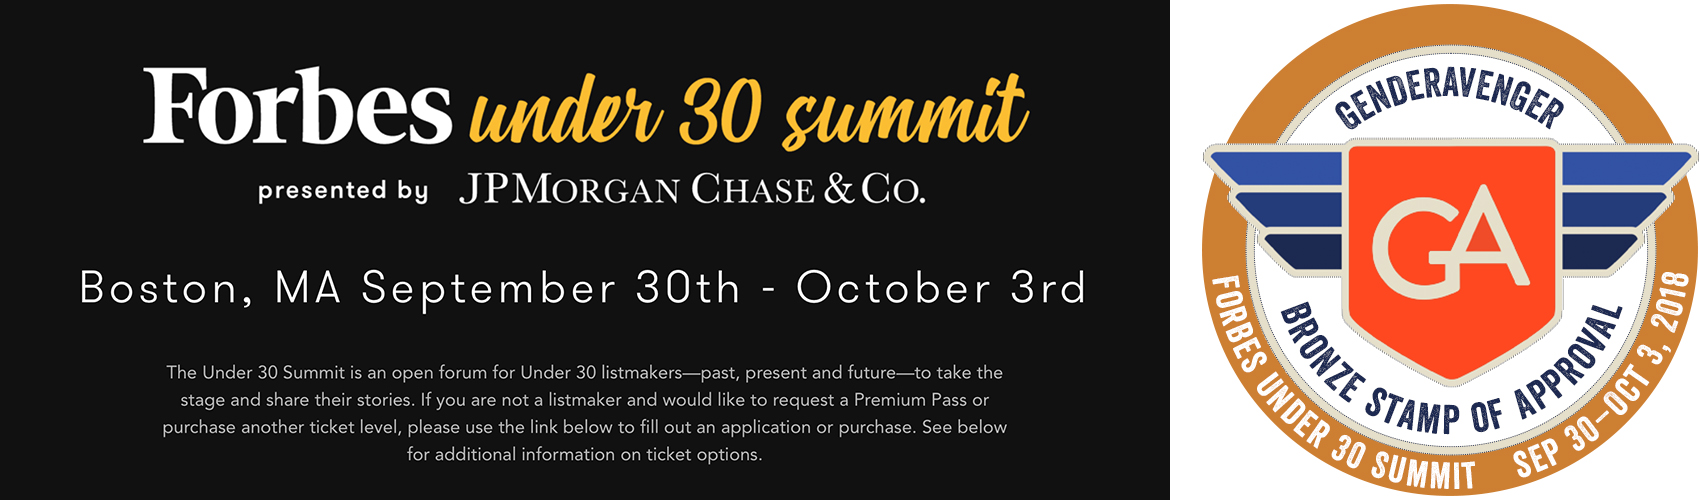 Forbes Under 30 Summit GA Bronze Stamp of Approval